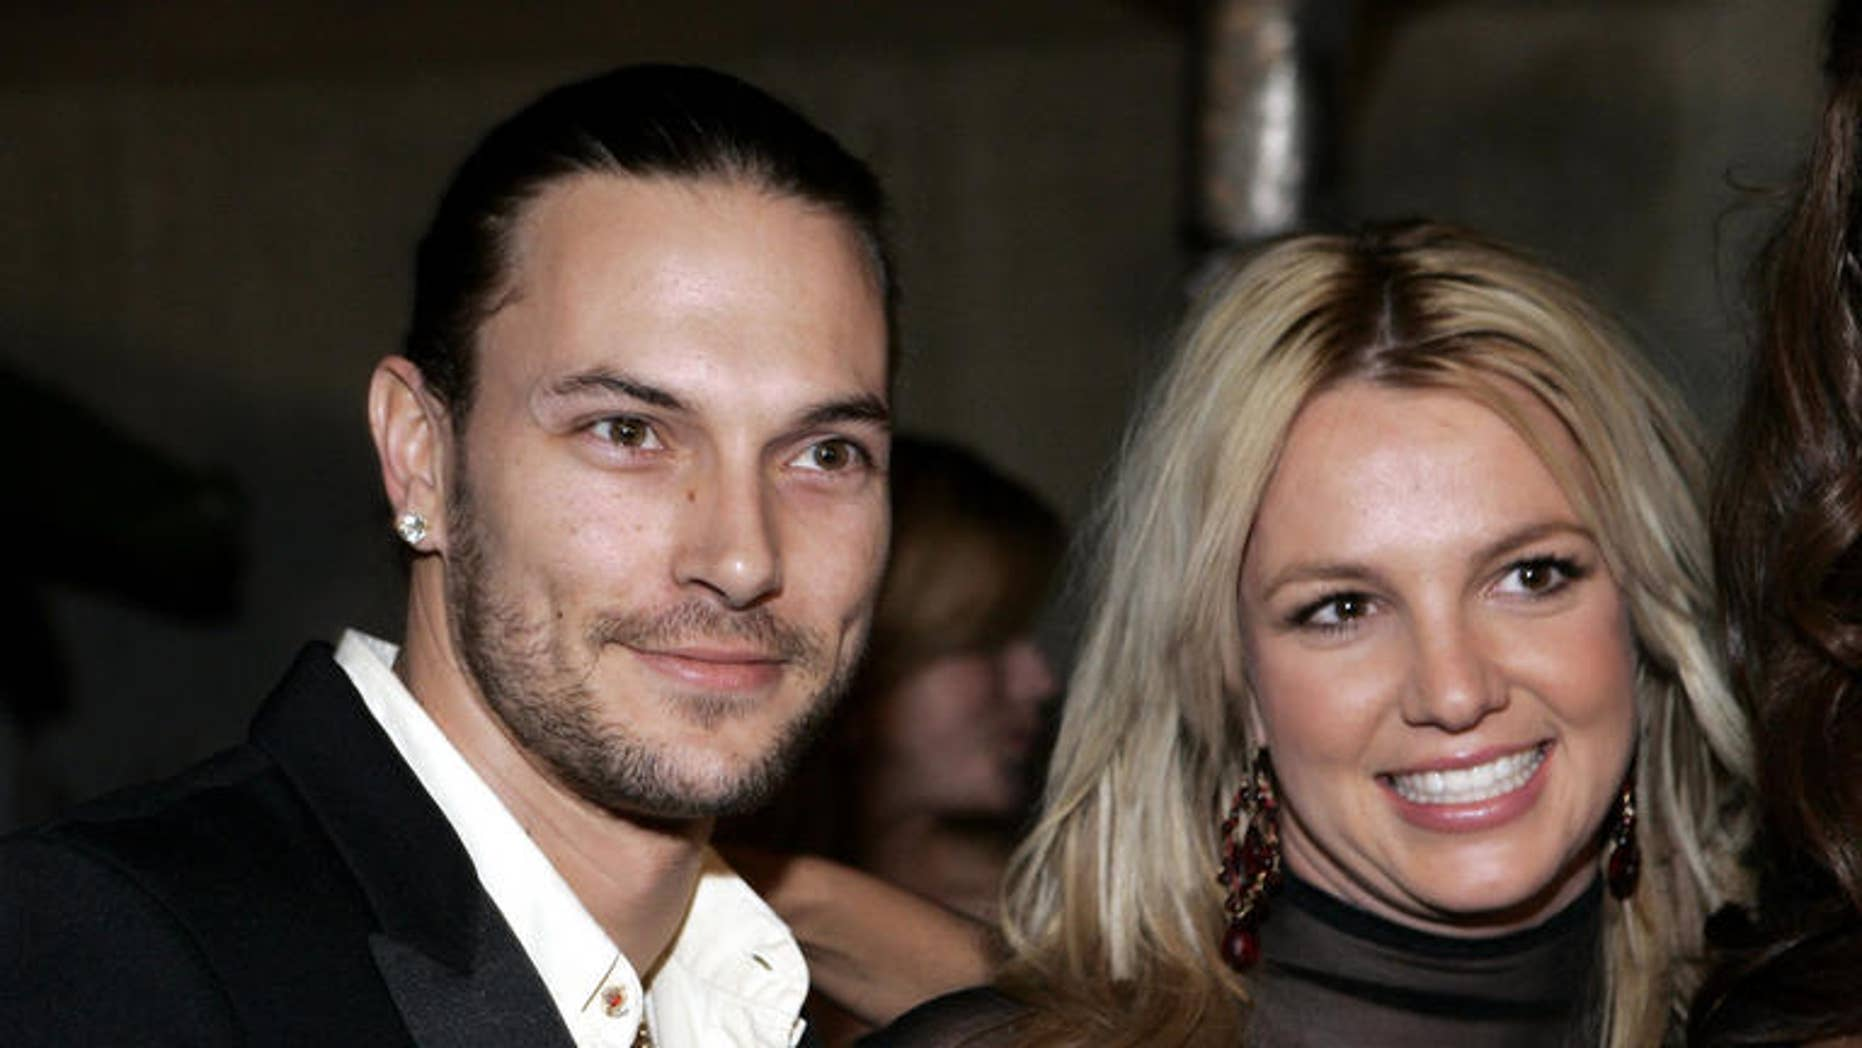 """**FILE** Britney Spears, right, and her husband Kevin Federline are seen in this Feb. 8, 2006 file photo in Beverly Hills, Calif.  Britney Spears' marriage to Kevin Federline officially ended Monday, July 30, 2007. """"They are divorced,"""" the pop star's attorney, Laura Wasser, said after a Superior Court hearing. """"Everything is finalized."""" (AP Photo/Danny Moloshok, FILE)"""